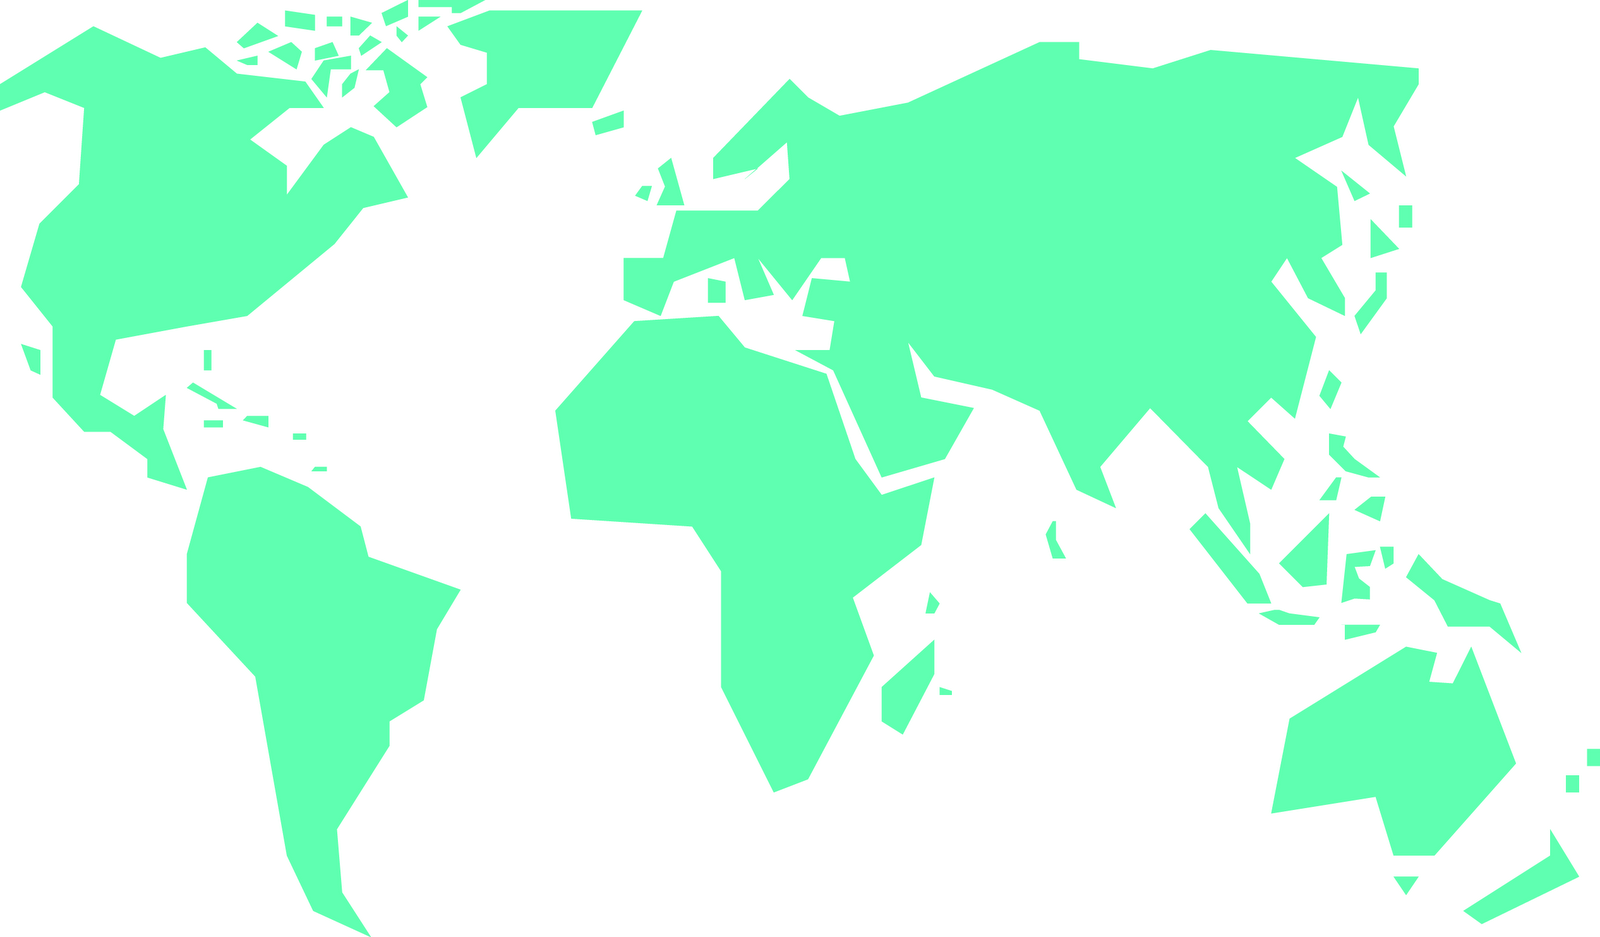 World Map clipart #20, Download drawings